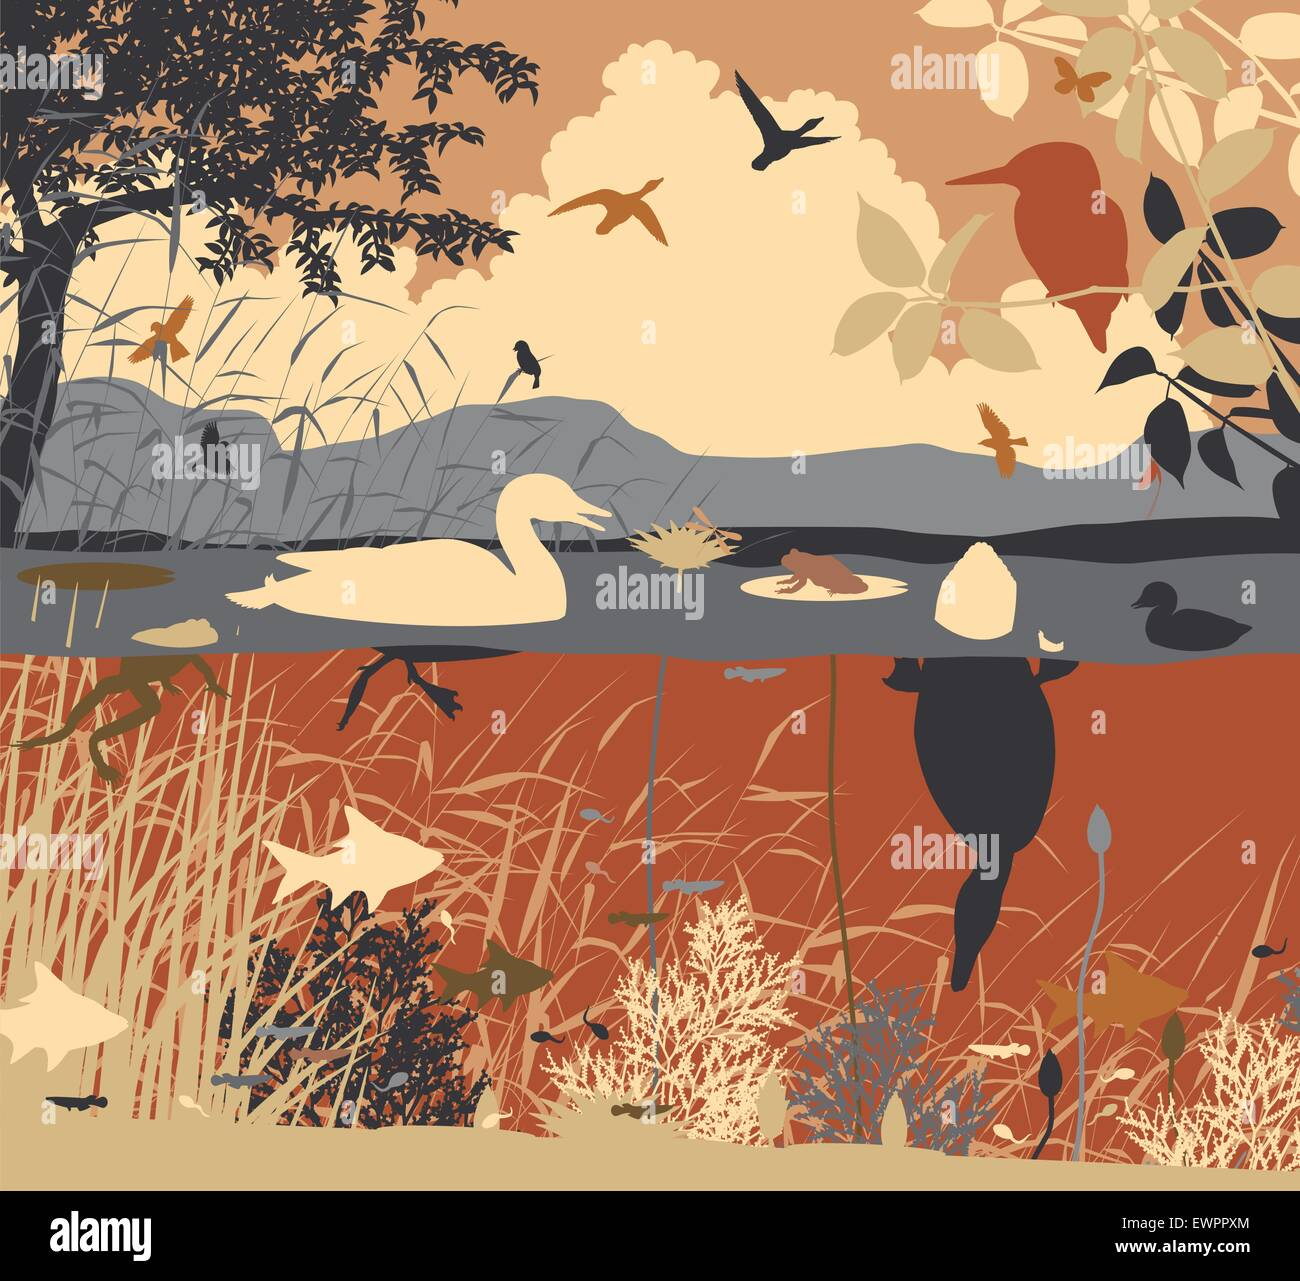 EPS8 editable vector illustration of diverse wildlife in a freshwater ecosystem with all figures as separate objects - Stock Image